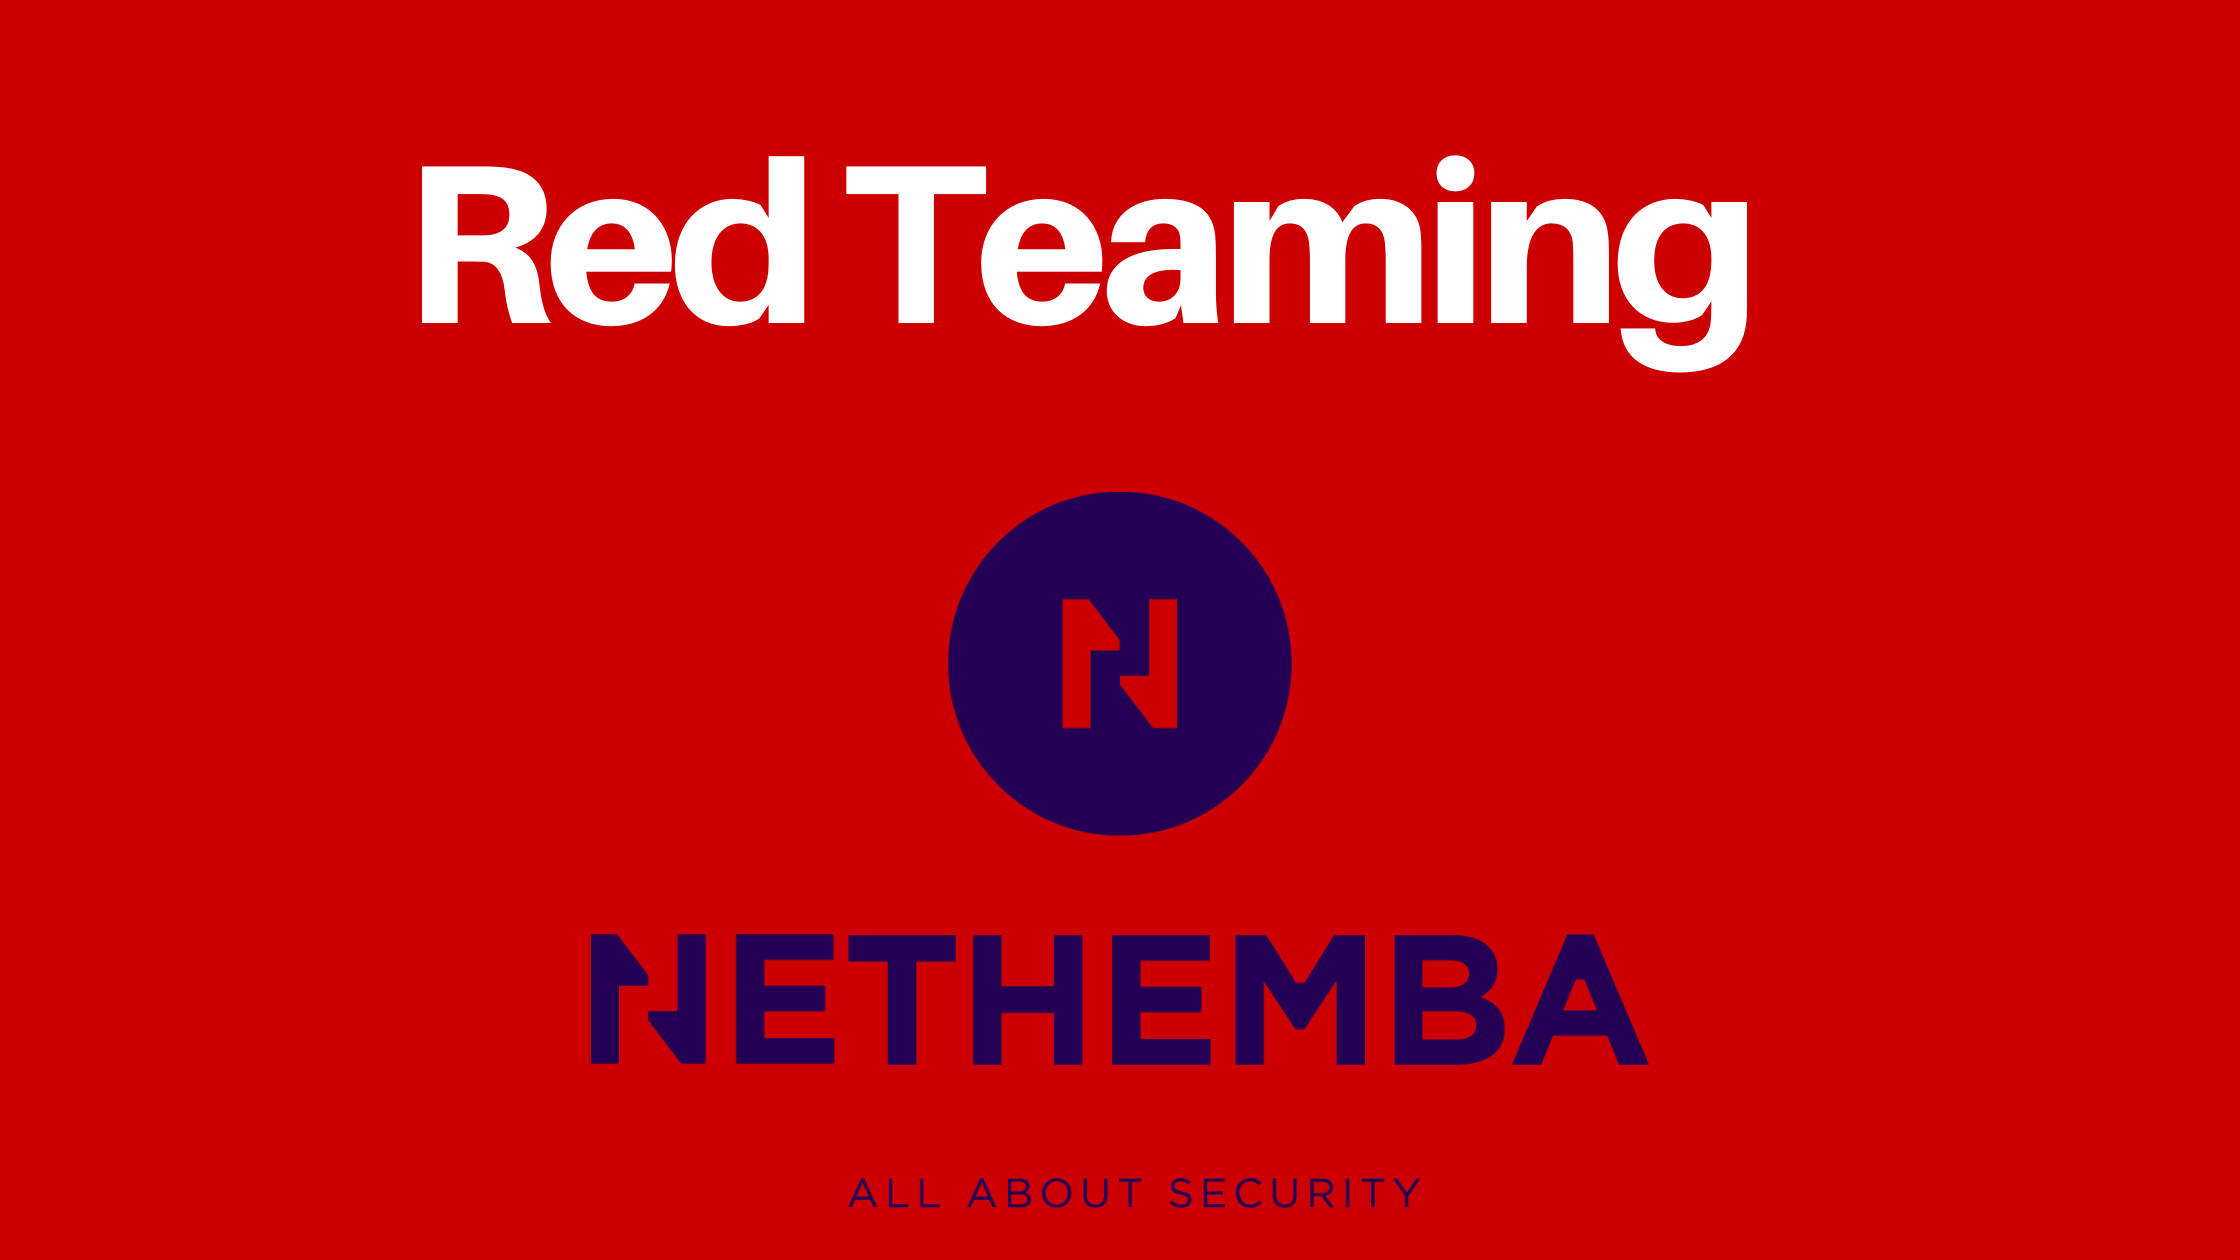 RED TEAMING – CAN YOU WITHSTAND A PROFESSIONALLY LED ATTACK?